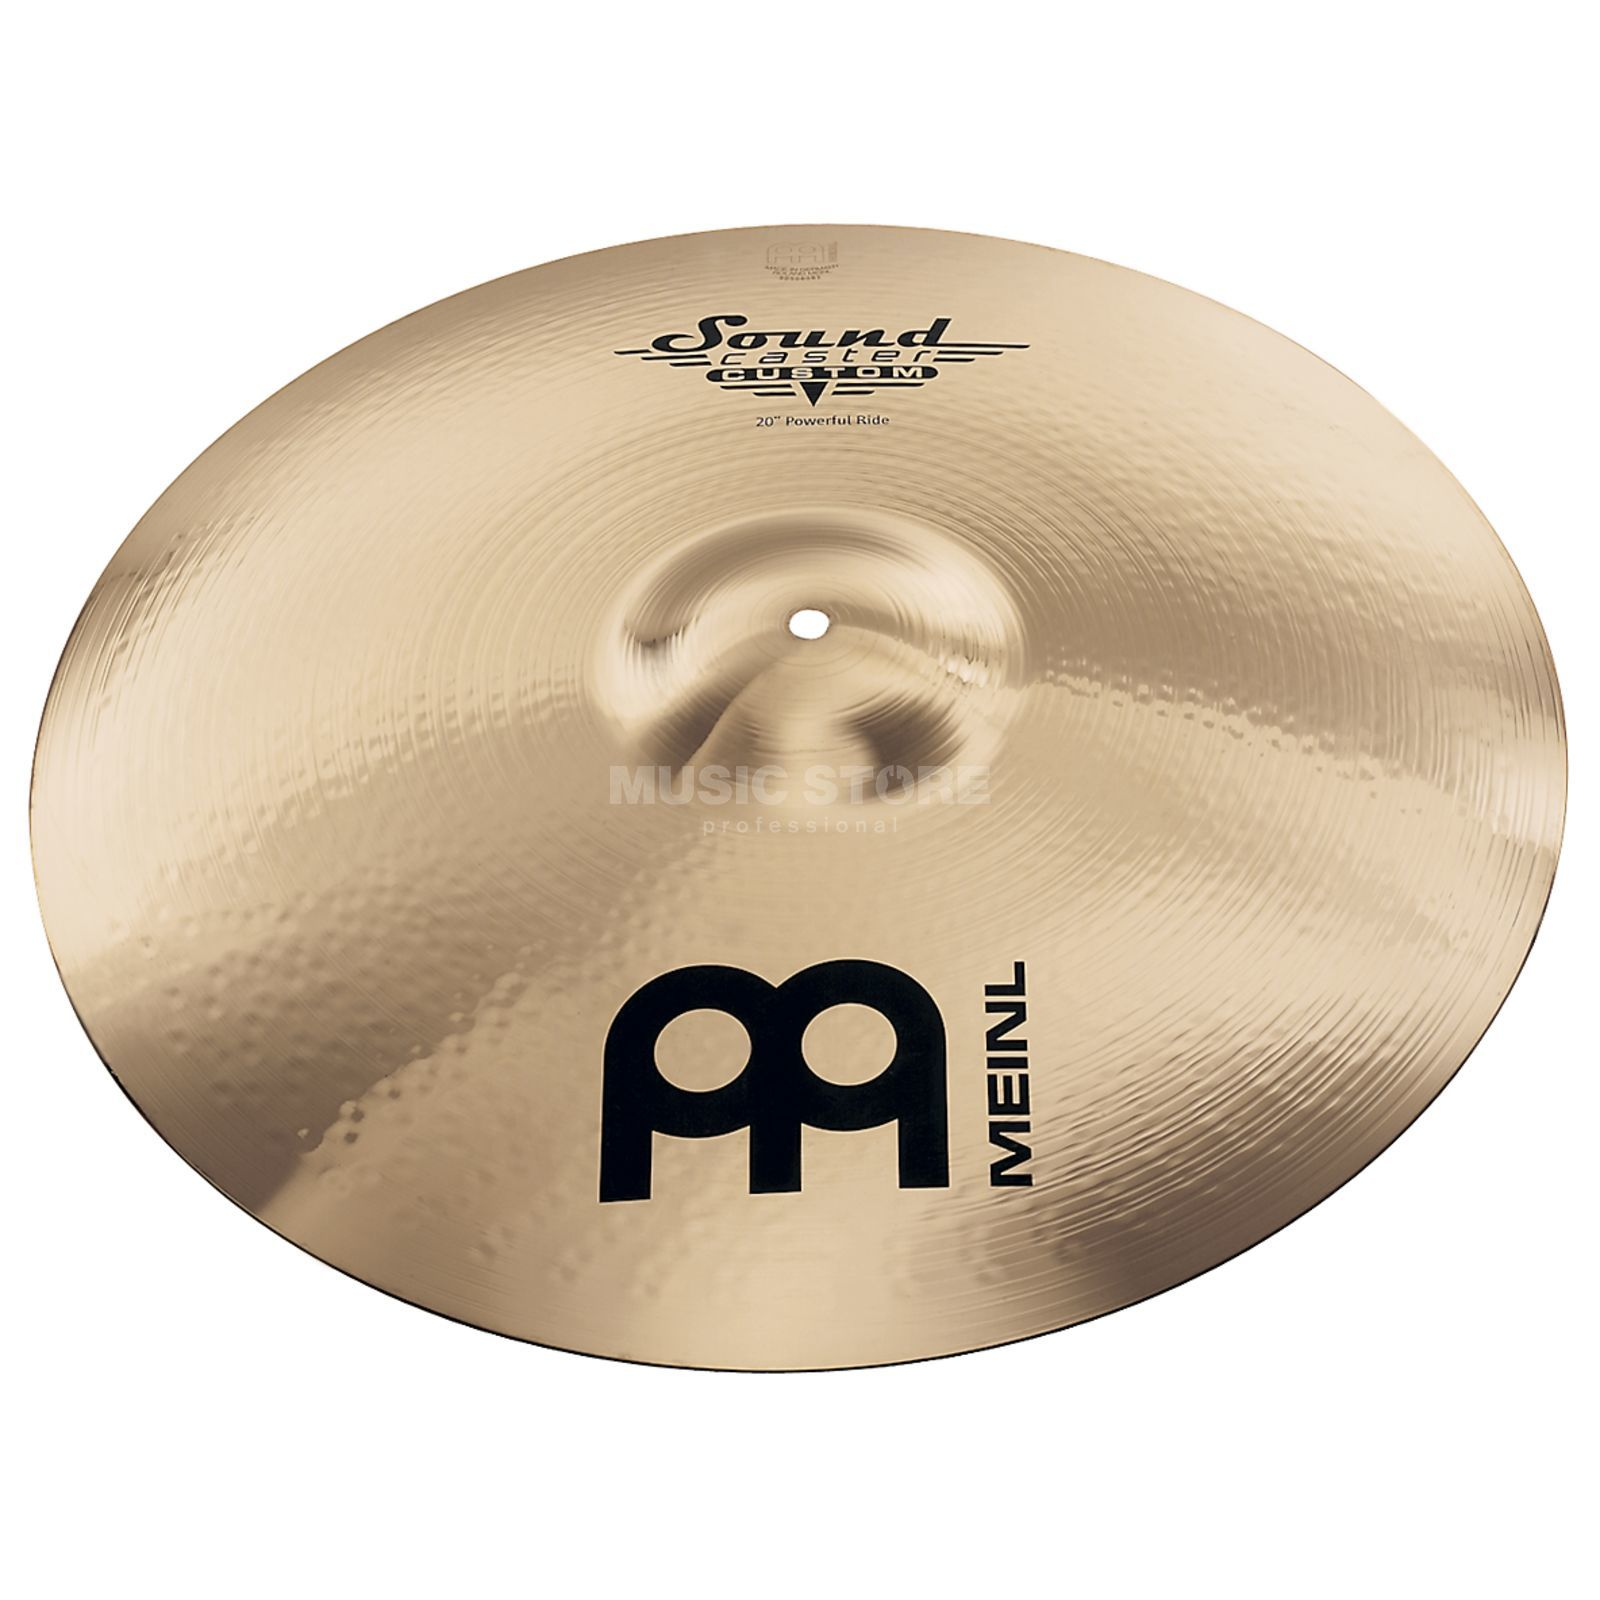 "Meinl SoundCaster Custom Ride 21"" SC21PR-B, Powerful, Overstock Product Image"